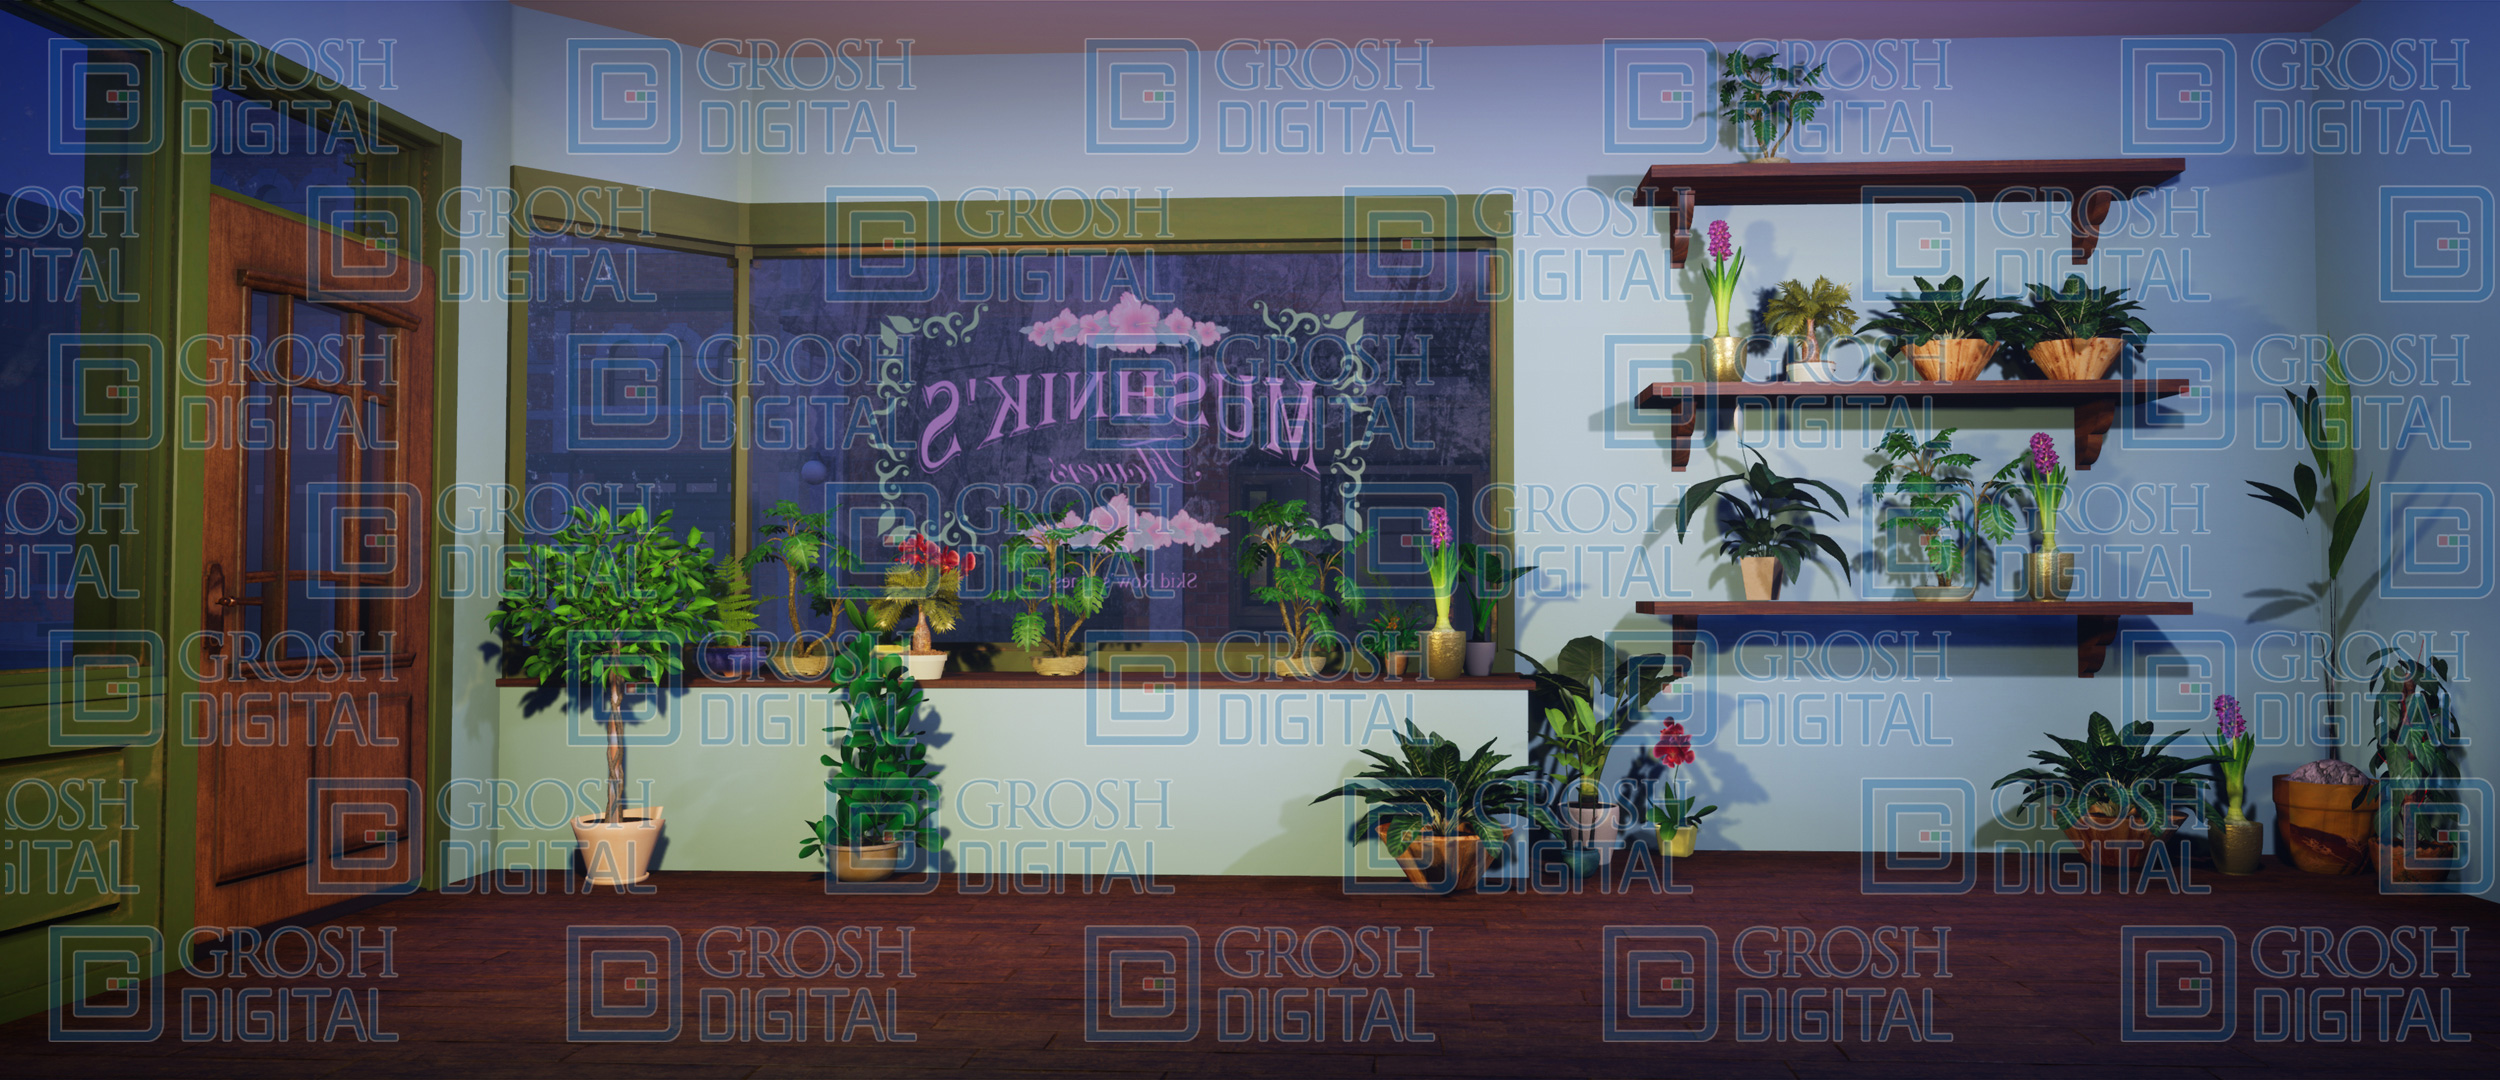 Mushnik's Flower Shop Projected Backdrop for Interiors, Little Shop of Horrors